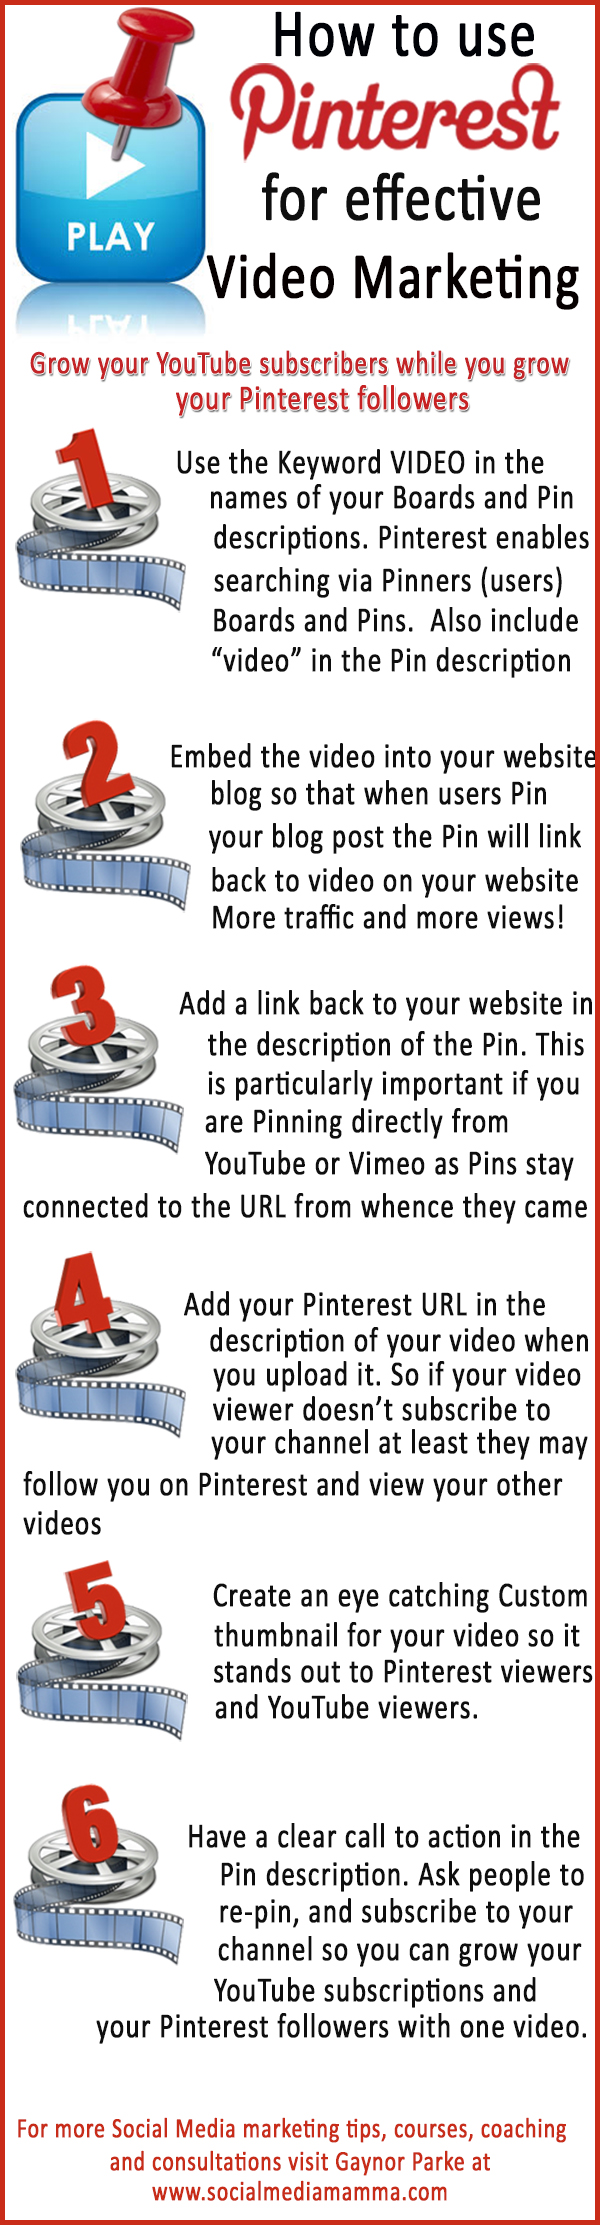 Cómo usar Pinterest para vídeo marketing efectivo